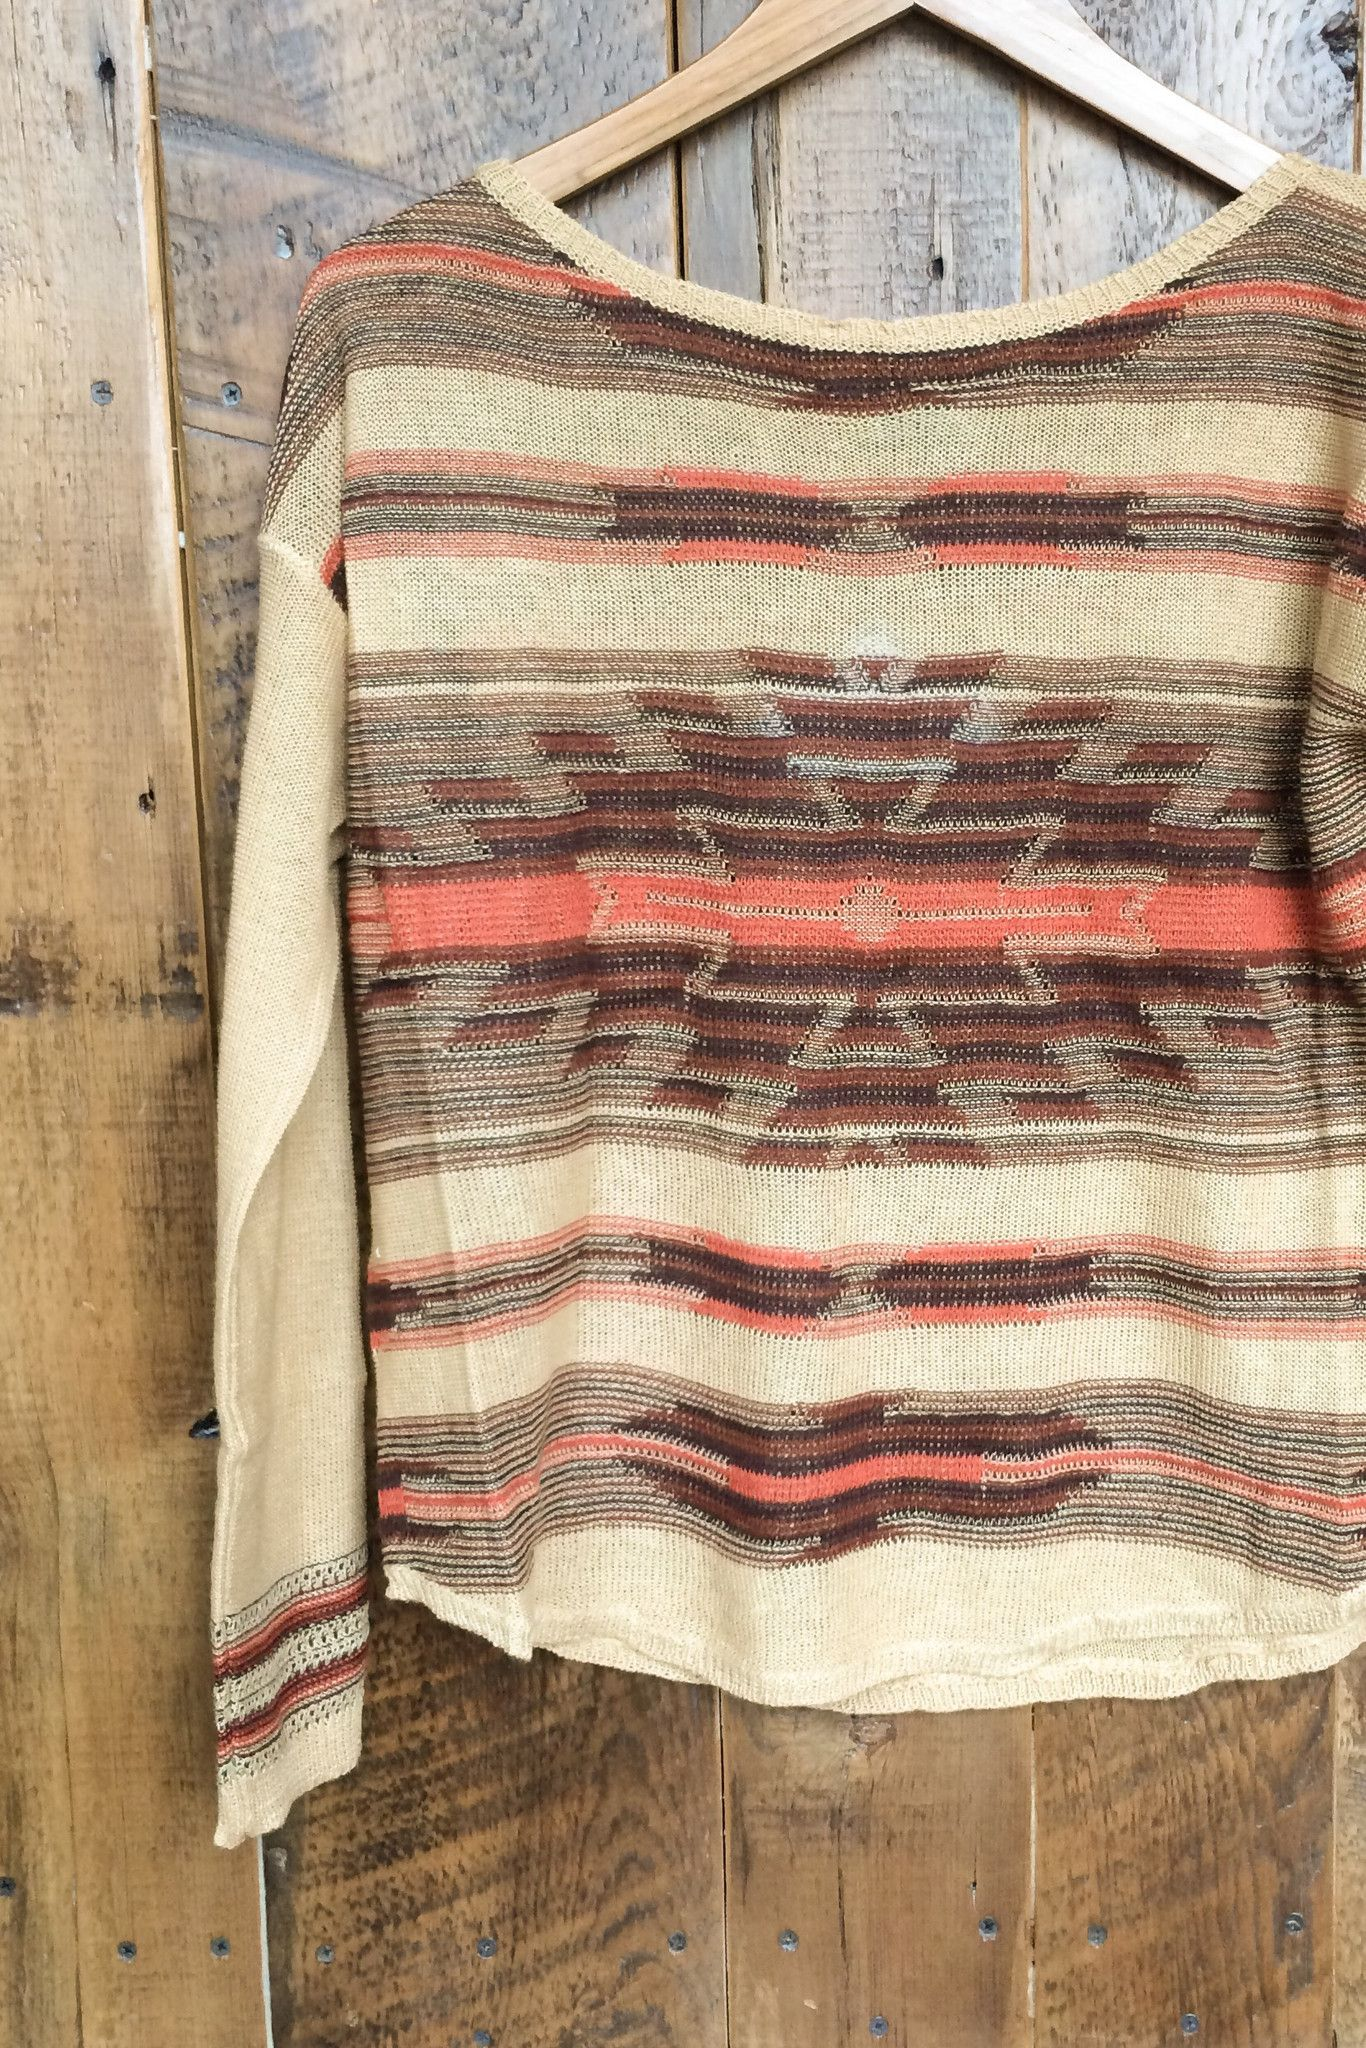 Southwest sweater Tan, dark brown and orange pattern front and back Super lightweight knit Great fall transition piece Layers well with The Buena tank 55% Linen